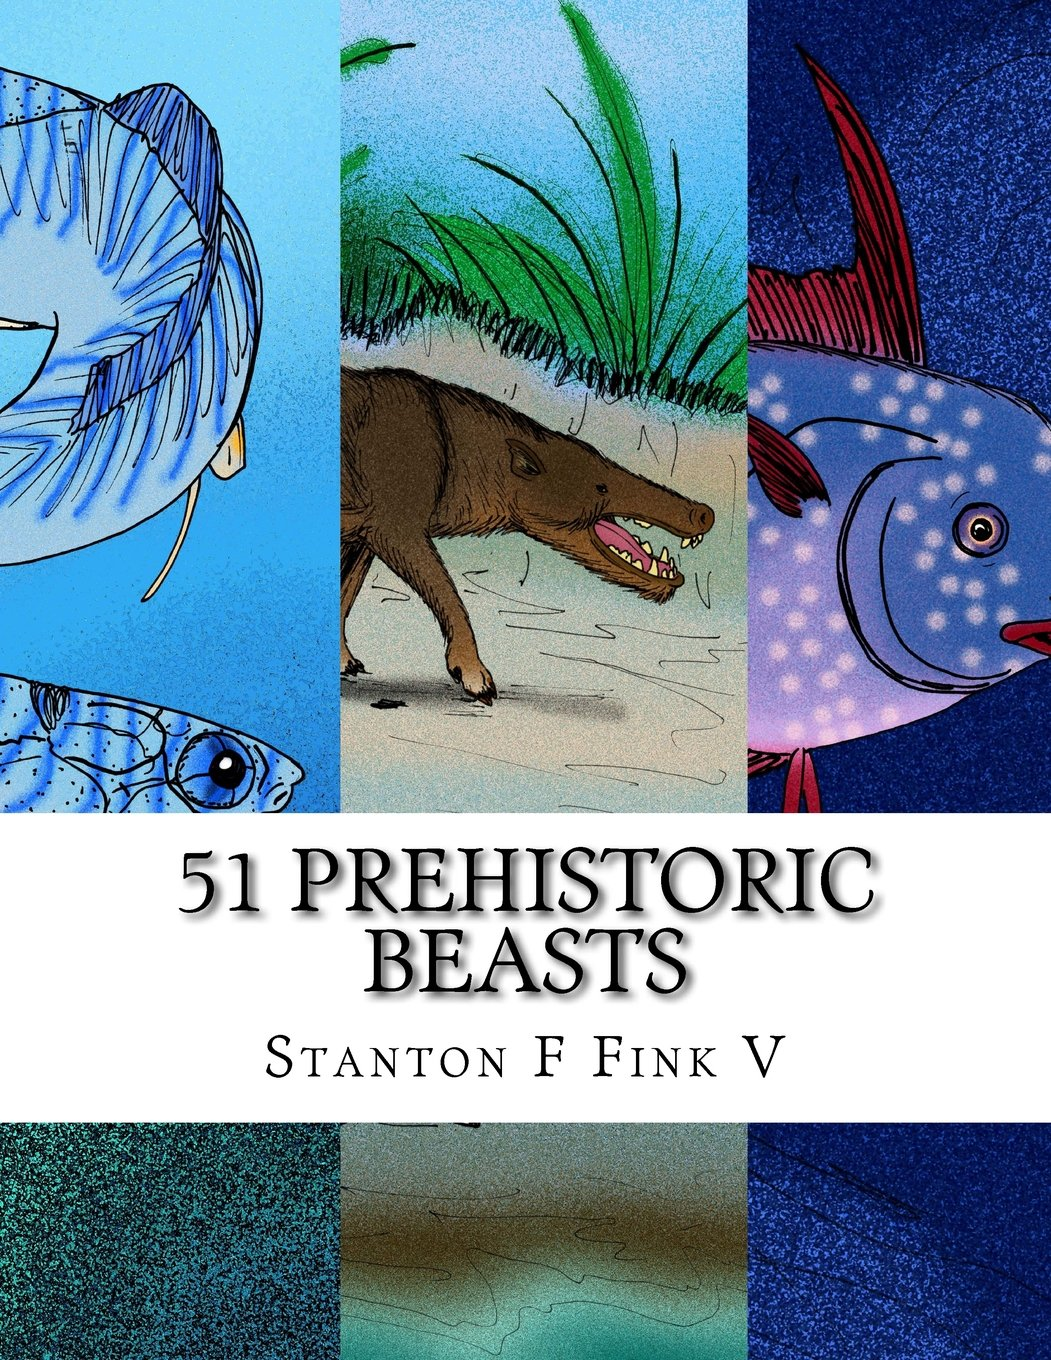 51 Prehistoric Beasts: Everyone Should Know About